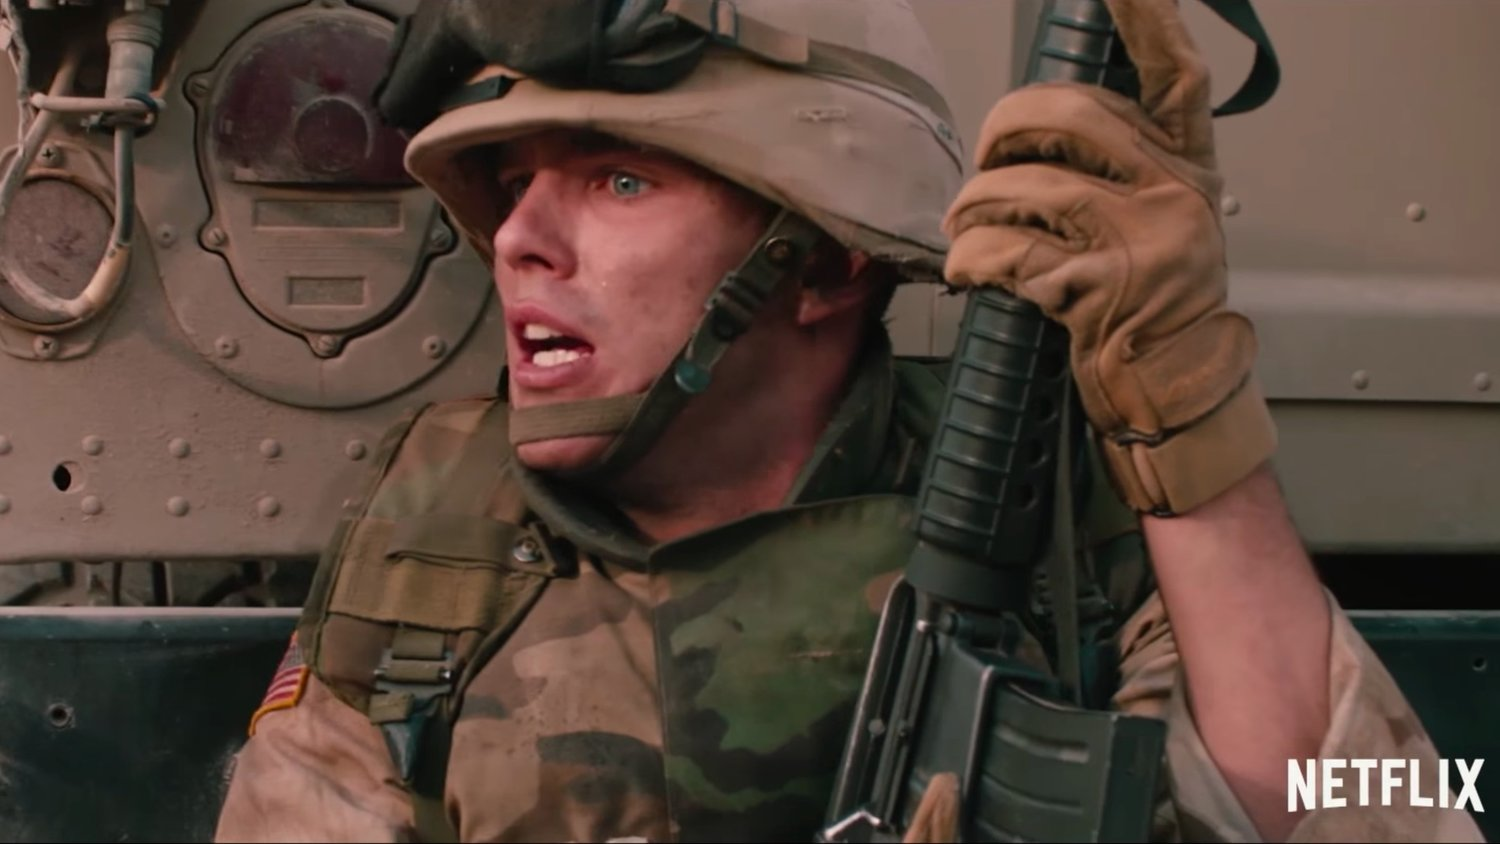 Intense Trailer for Netflix's War Drama SAND CASTLE with Henry Cavill and Nicholas Hoult